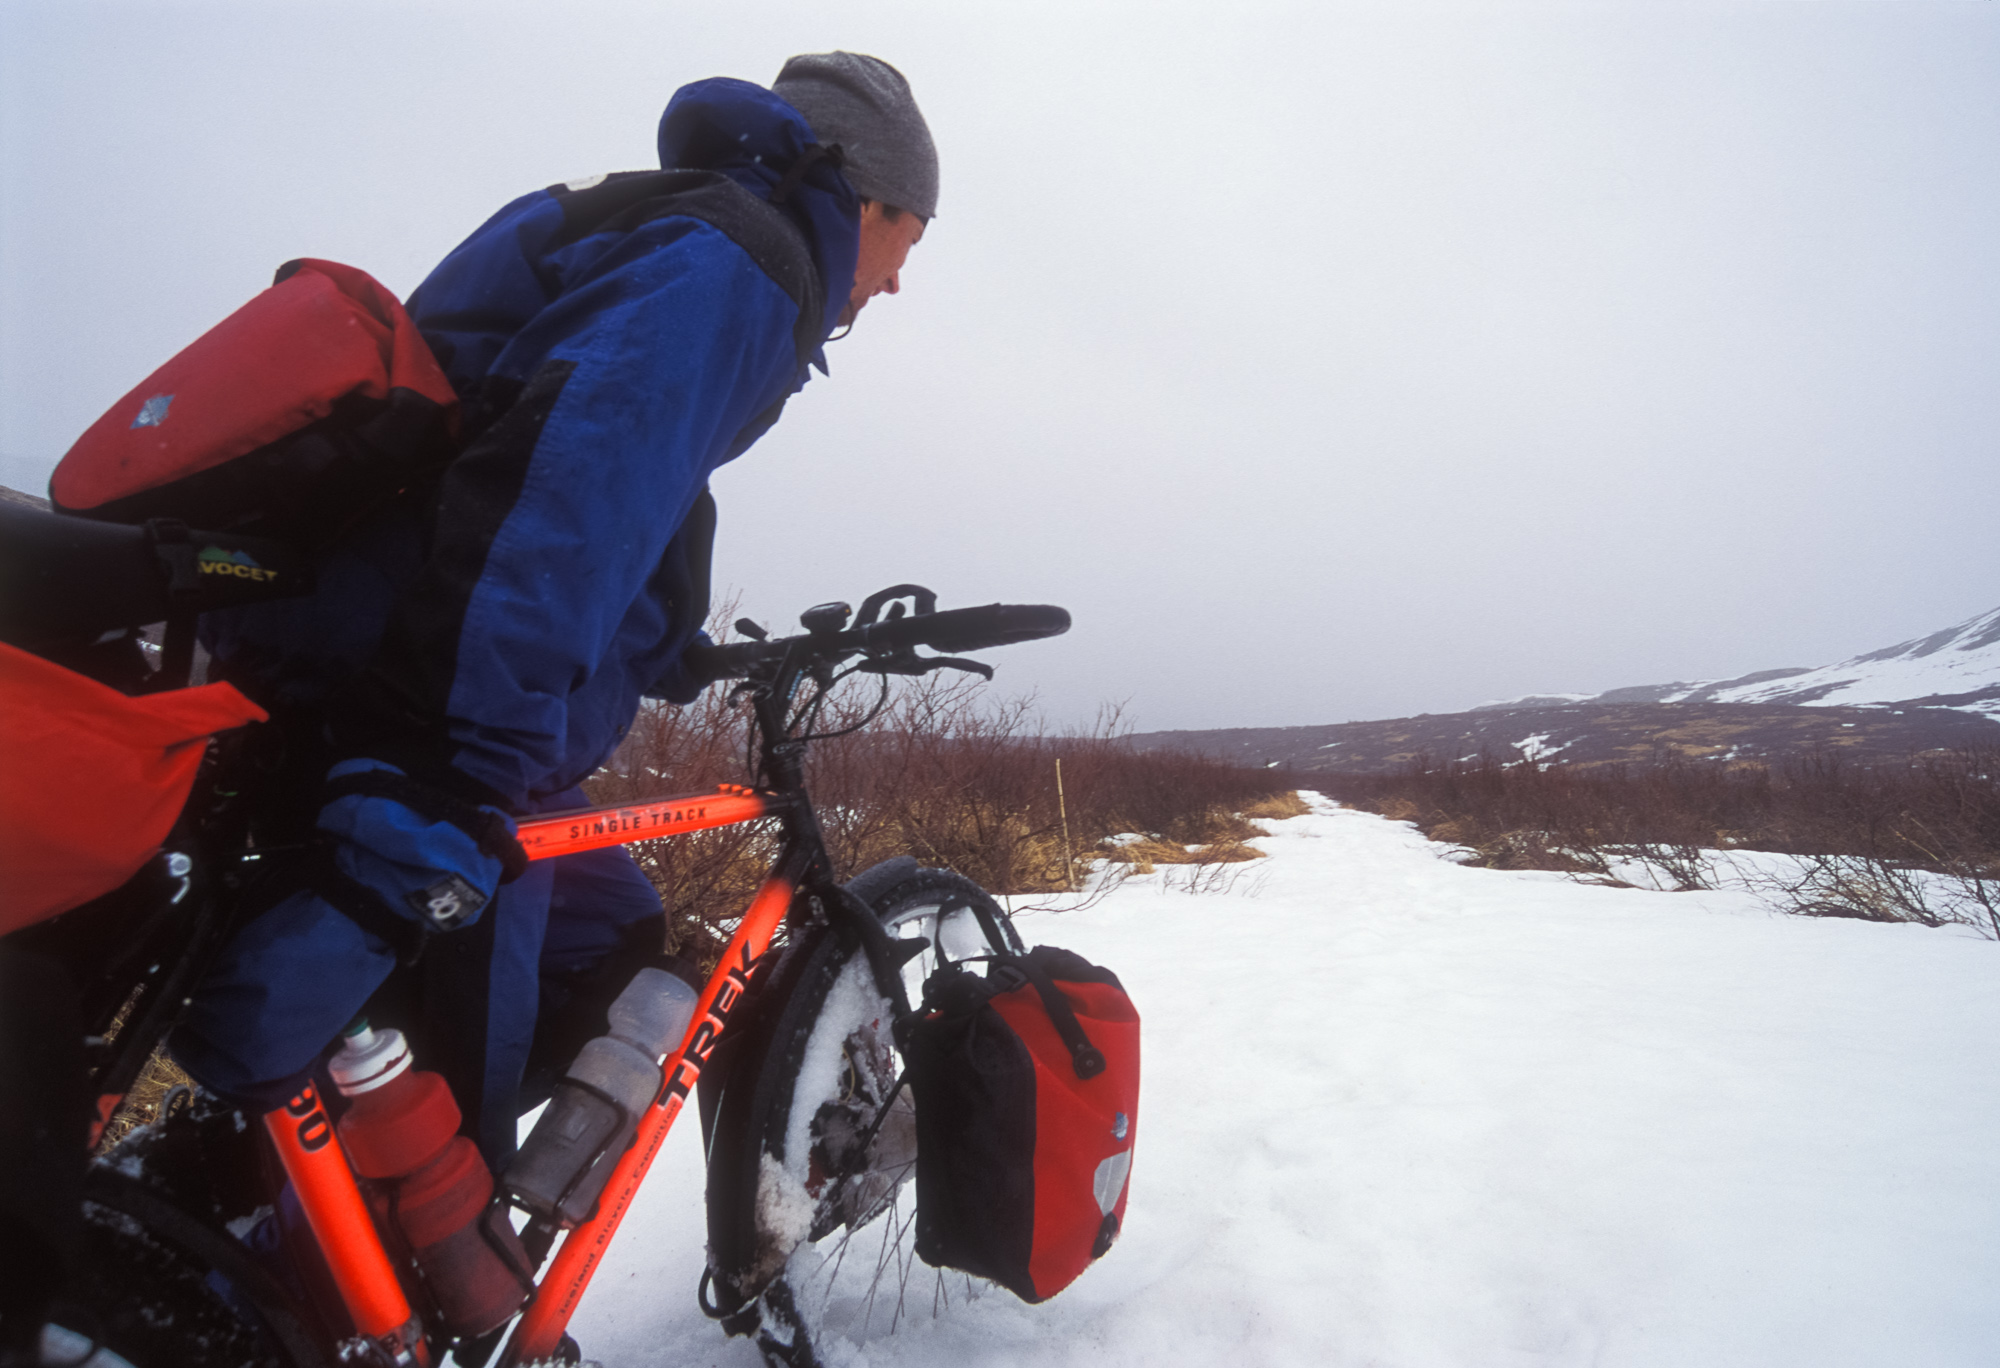 PUSHING THE BIKES UP TO THE PASS WAS MADE MORE DIFFICULT BY WET SNOW COLLECTING IN THE SPOKES.